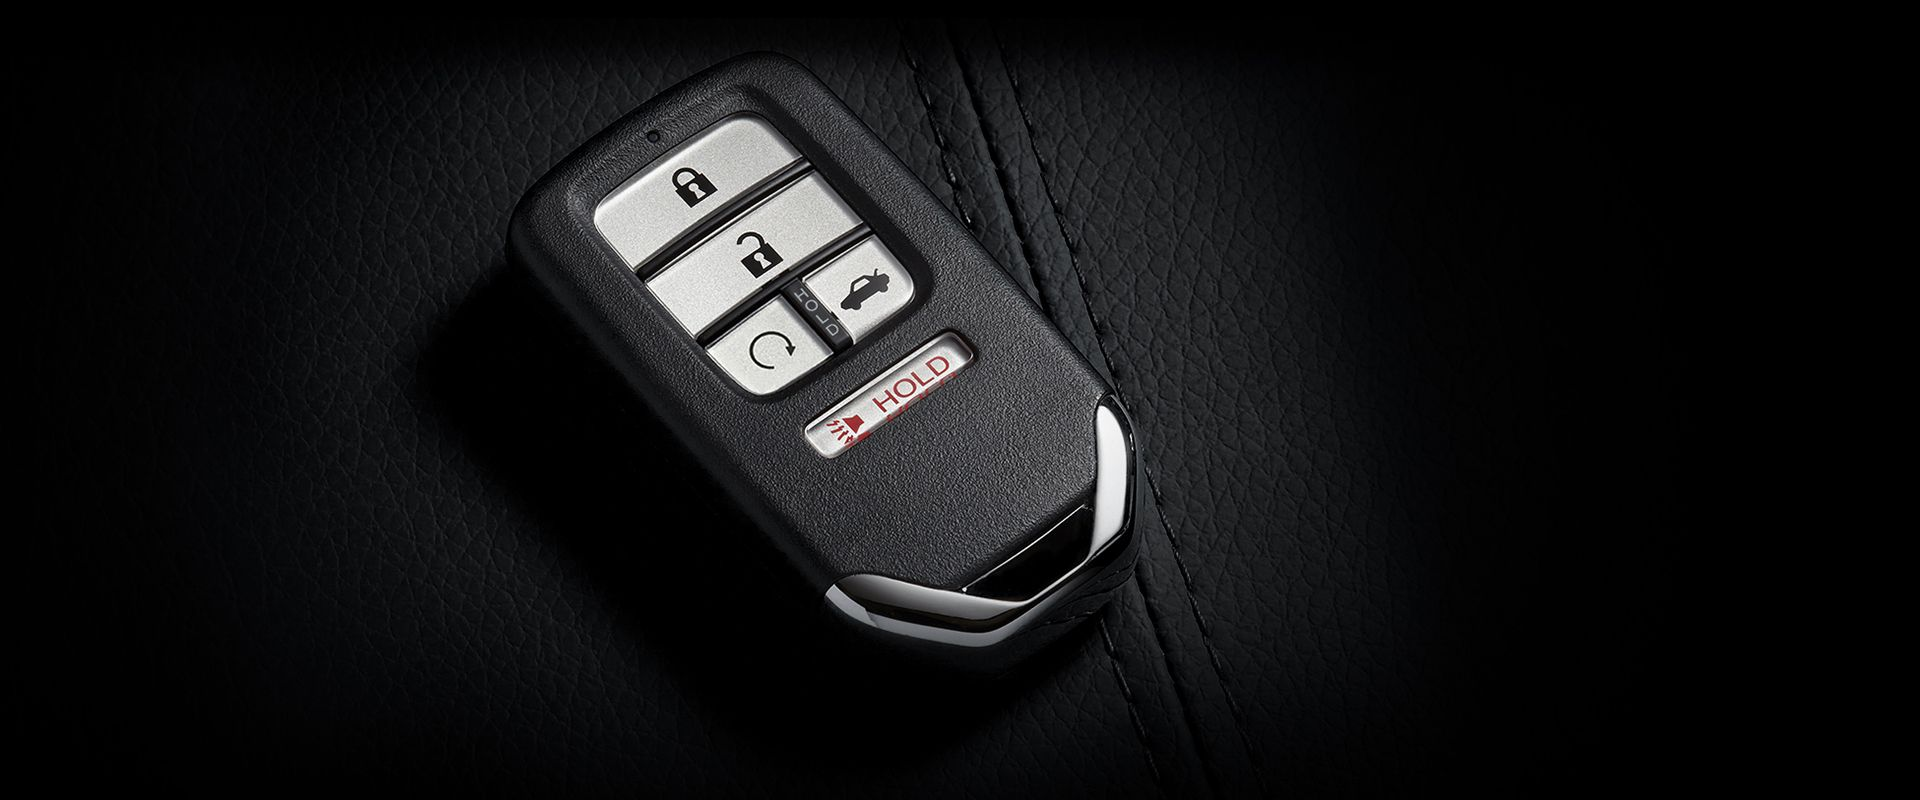 How to Use A Honda Remote Car Starter in 2 Simple Steps